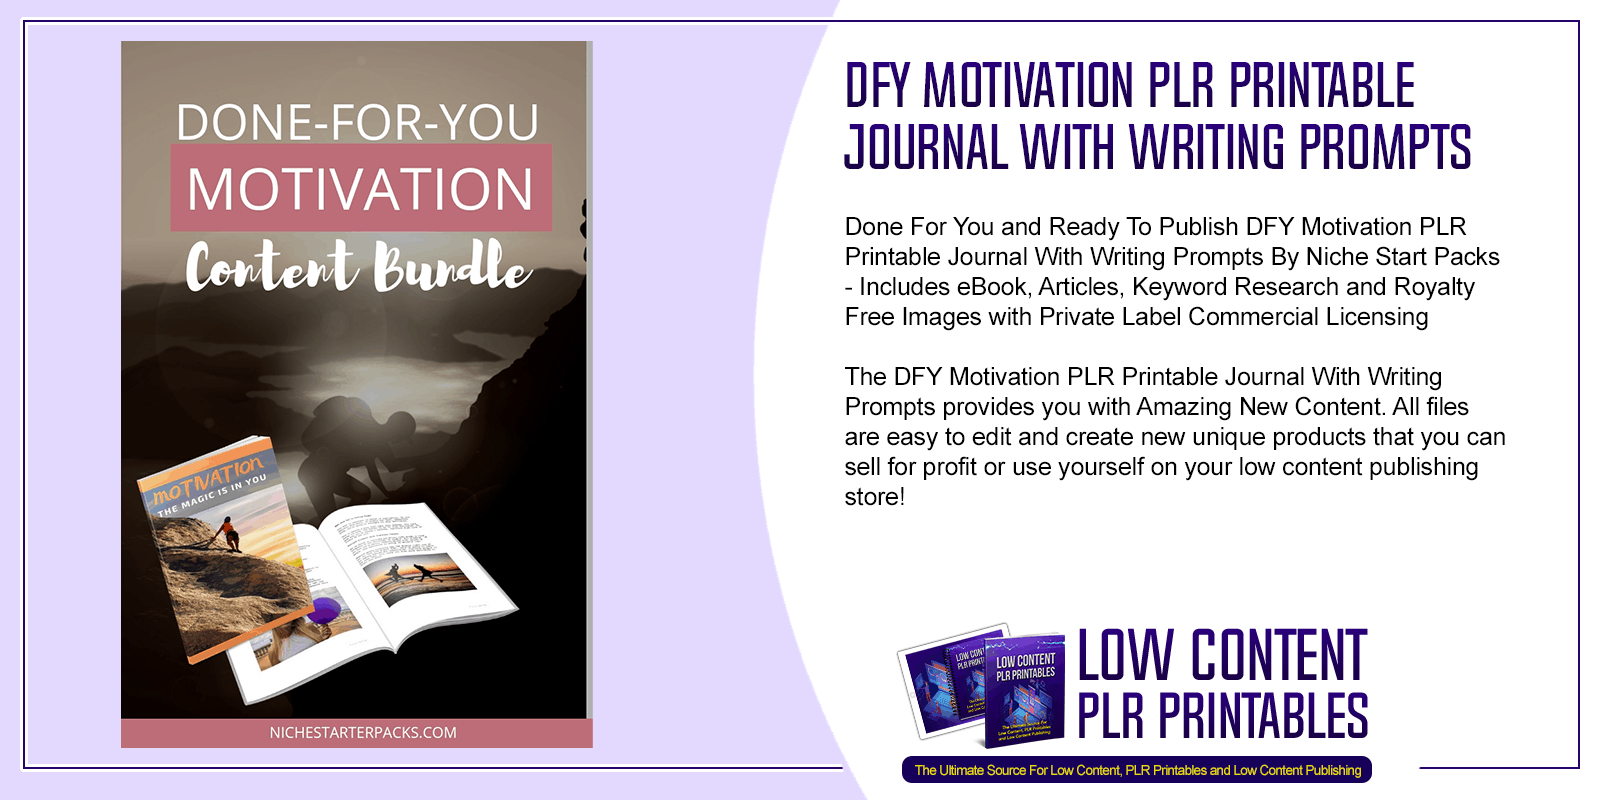 DFY Motivation PLR Printable Journal With Writing Prompts